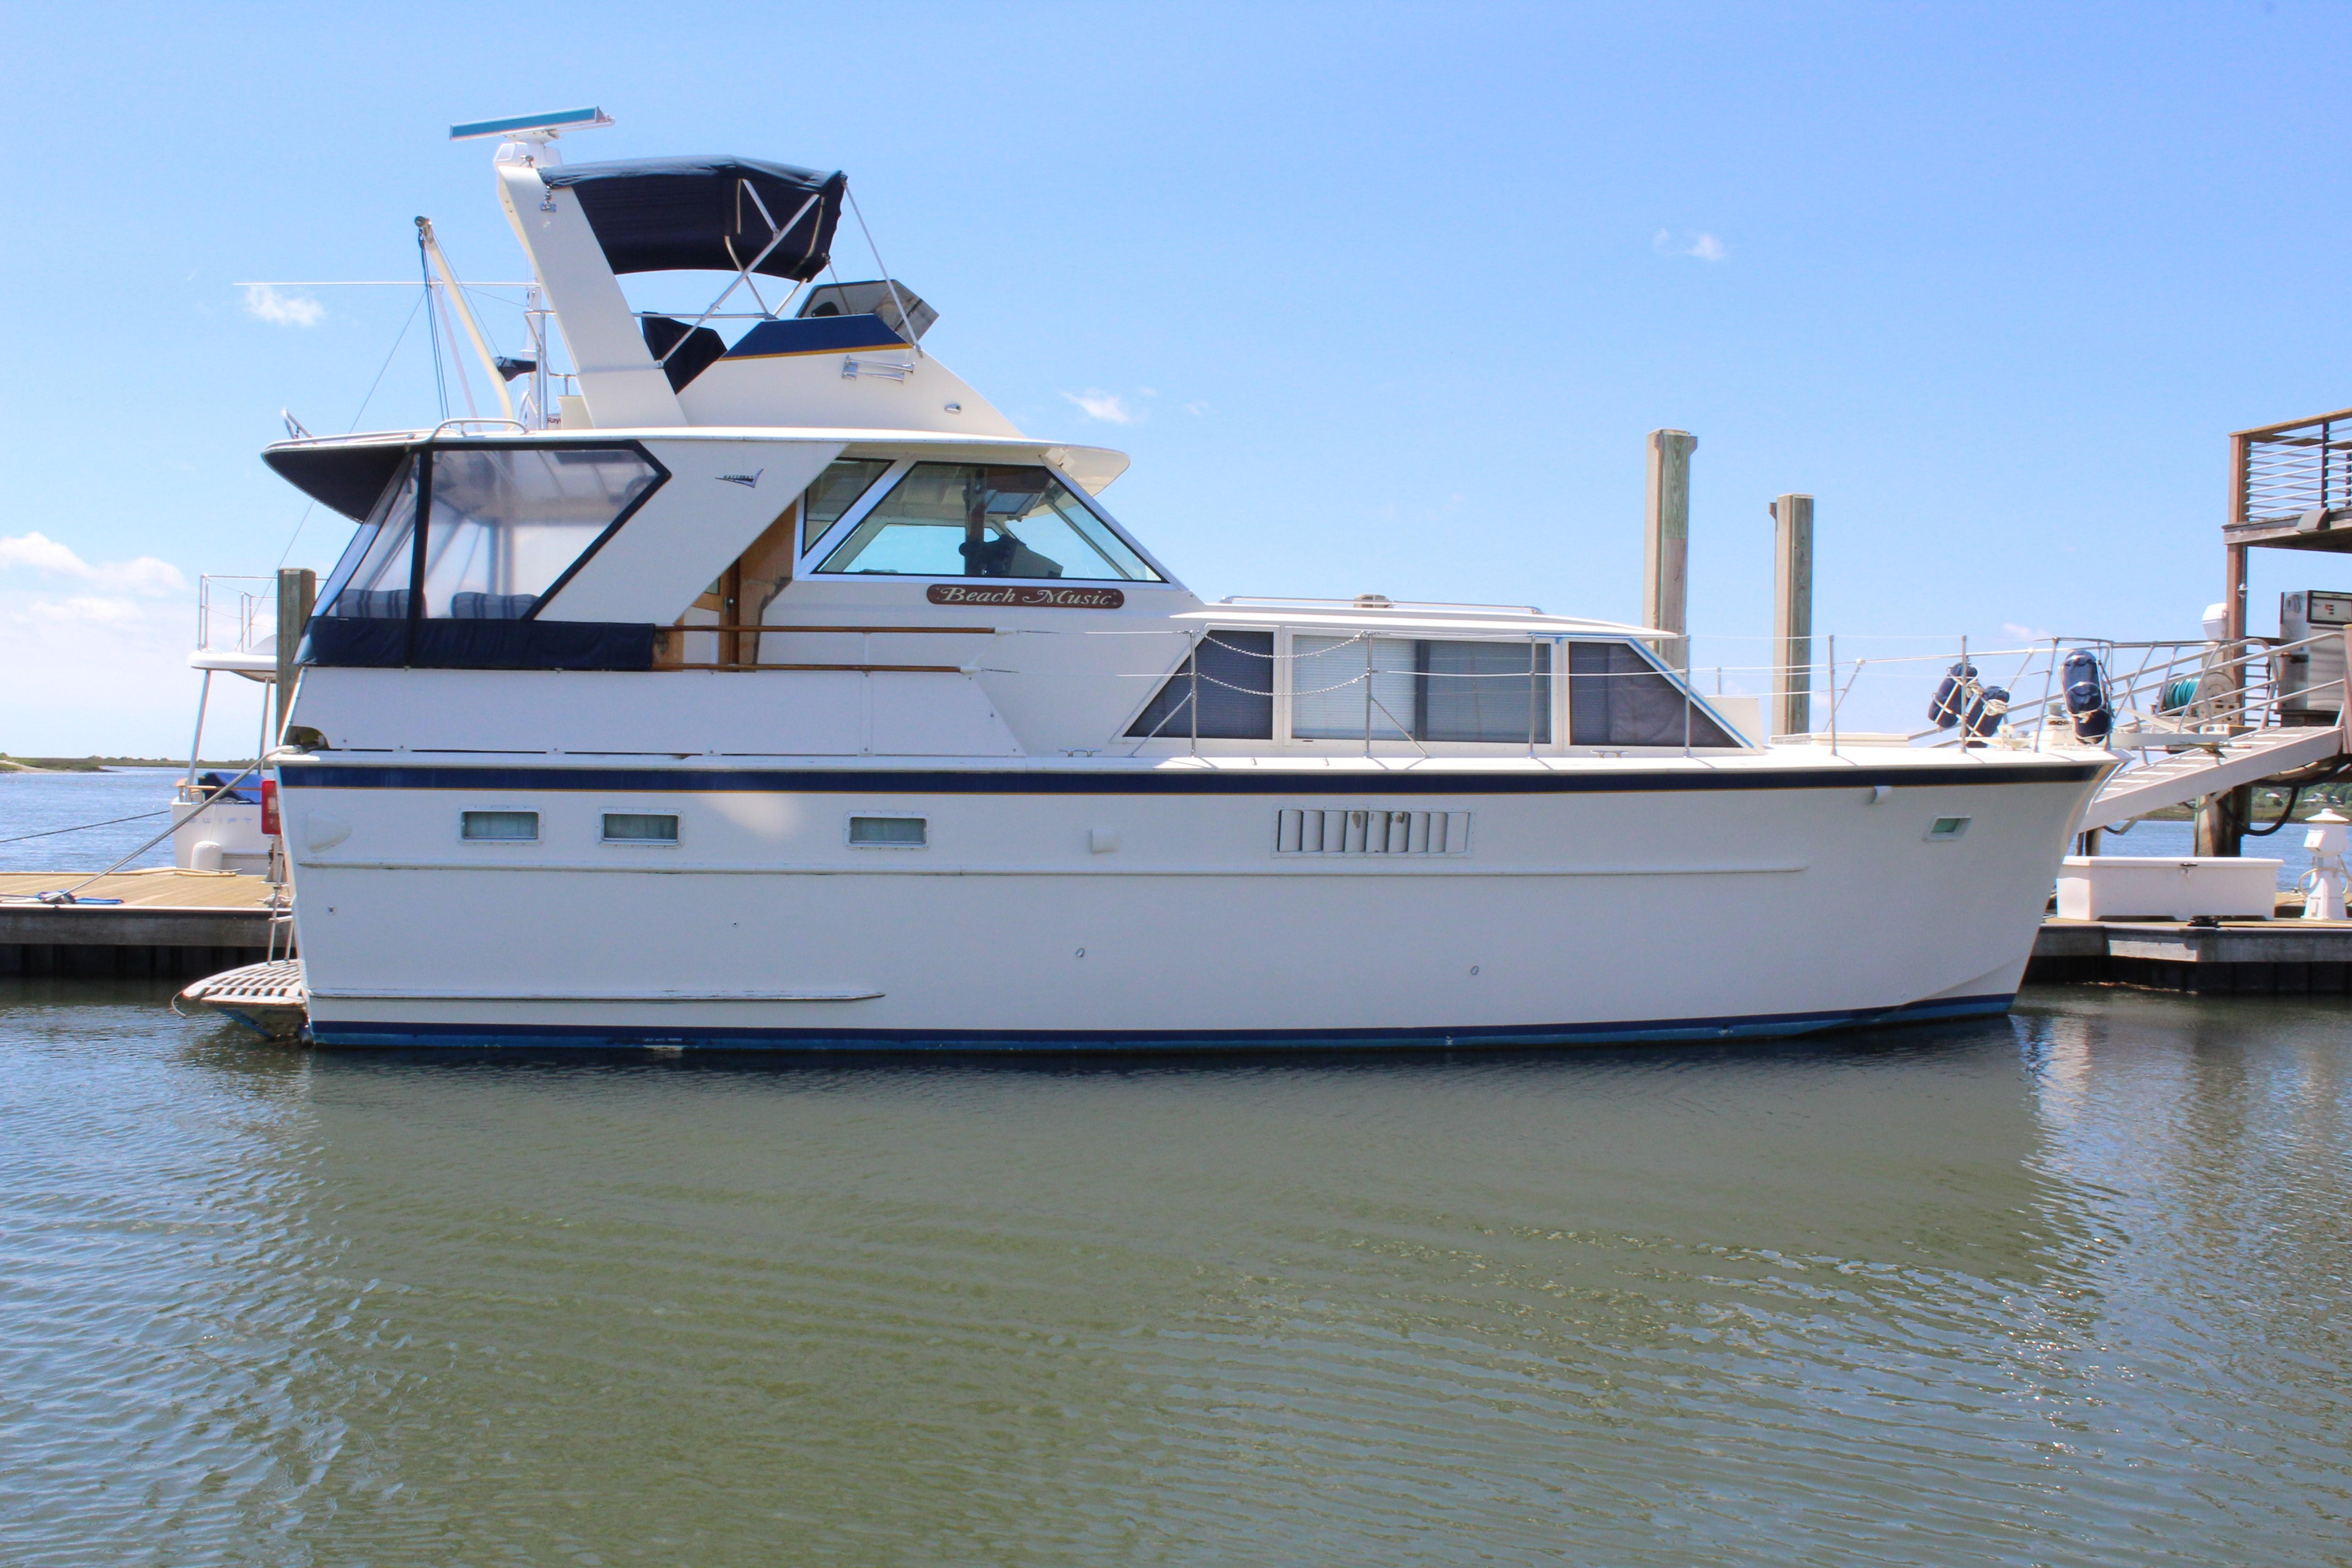 1970 Hatteras 44 Tri Cabin Motor Yacht Power Boat For Sale